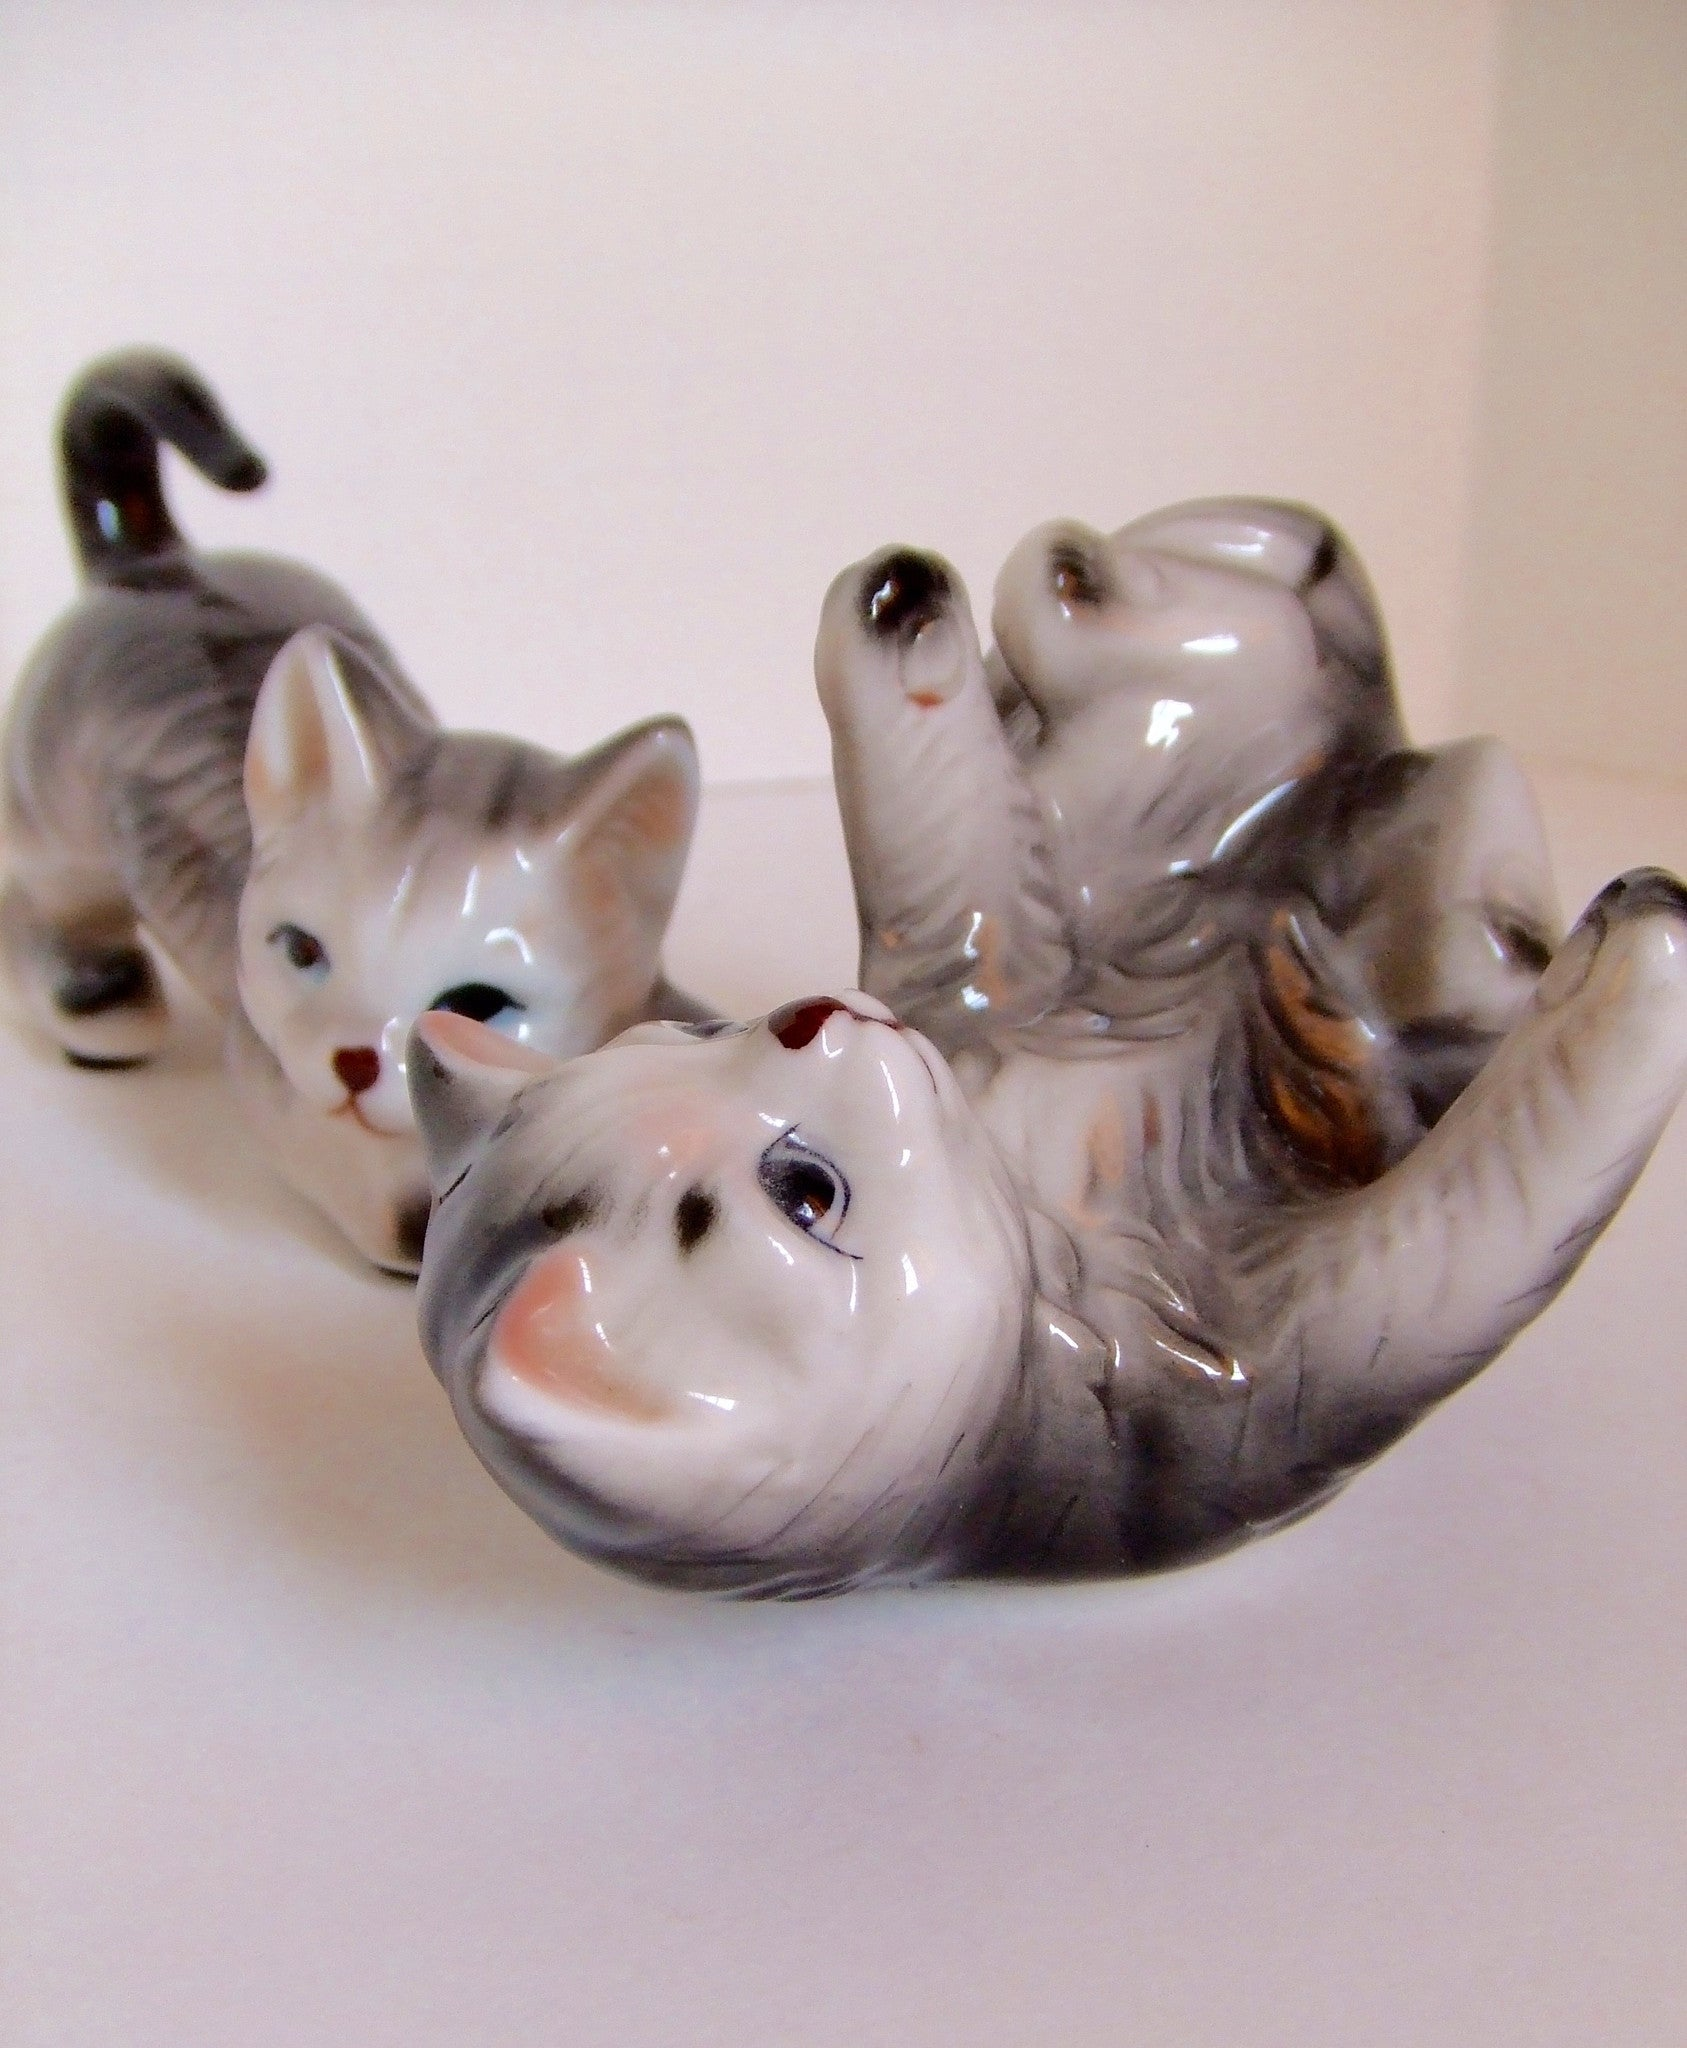 Pair of playful furry kitten figurines.